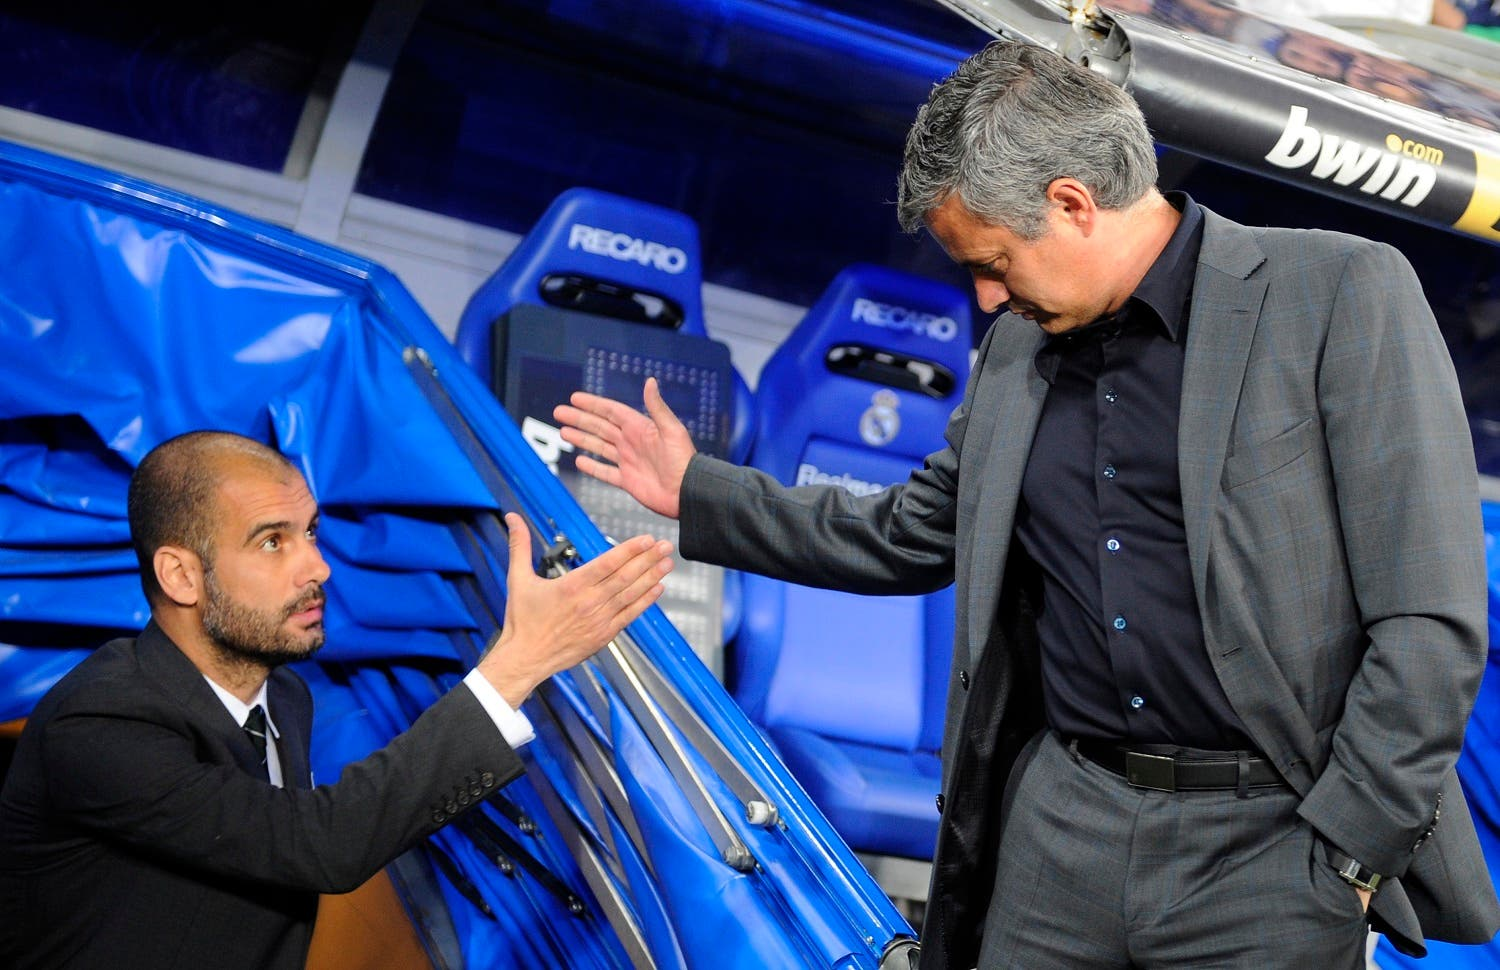 The Mourinho-Guardiola rivalry is back, this time they come face to face at the Manchester Derby, one of the most anticipated games of the EPL. (File photo: Reuters)